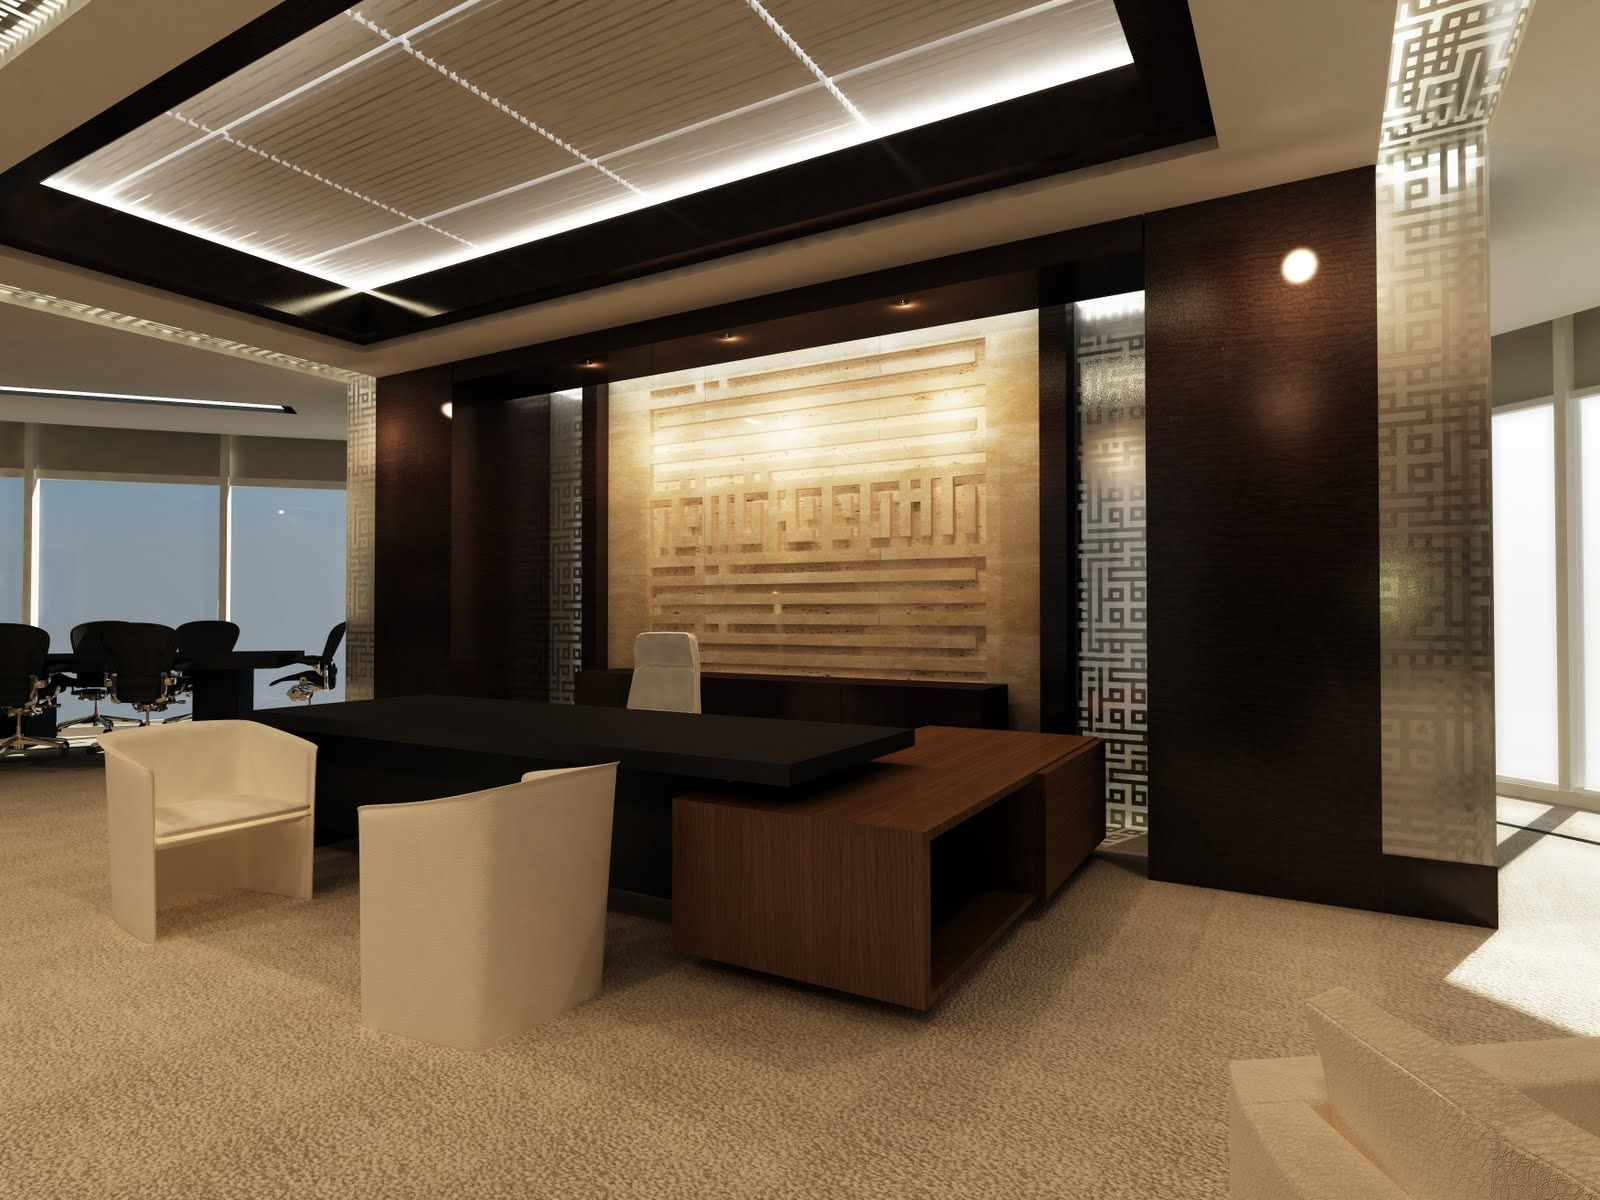 Office interior design intended for office interior design Office interior decorating ideas pictures